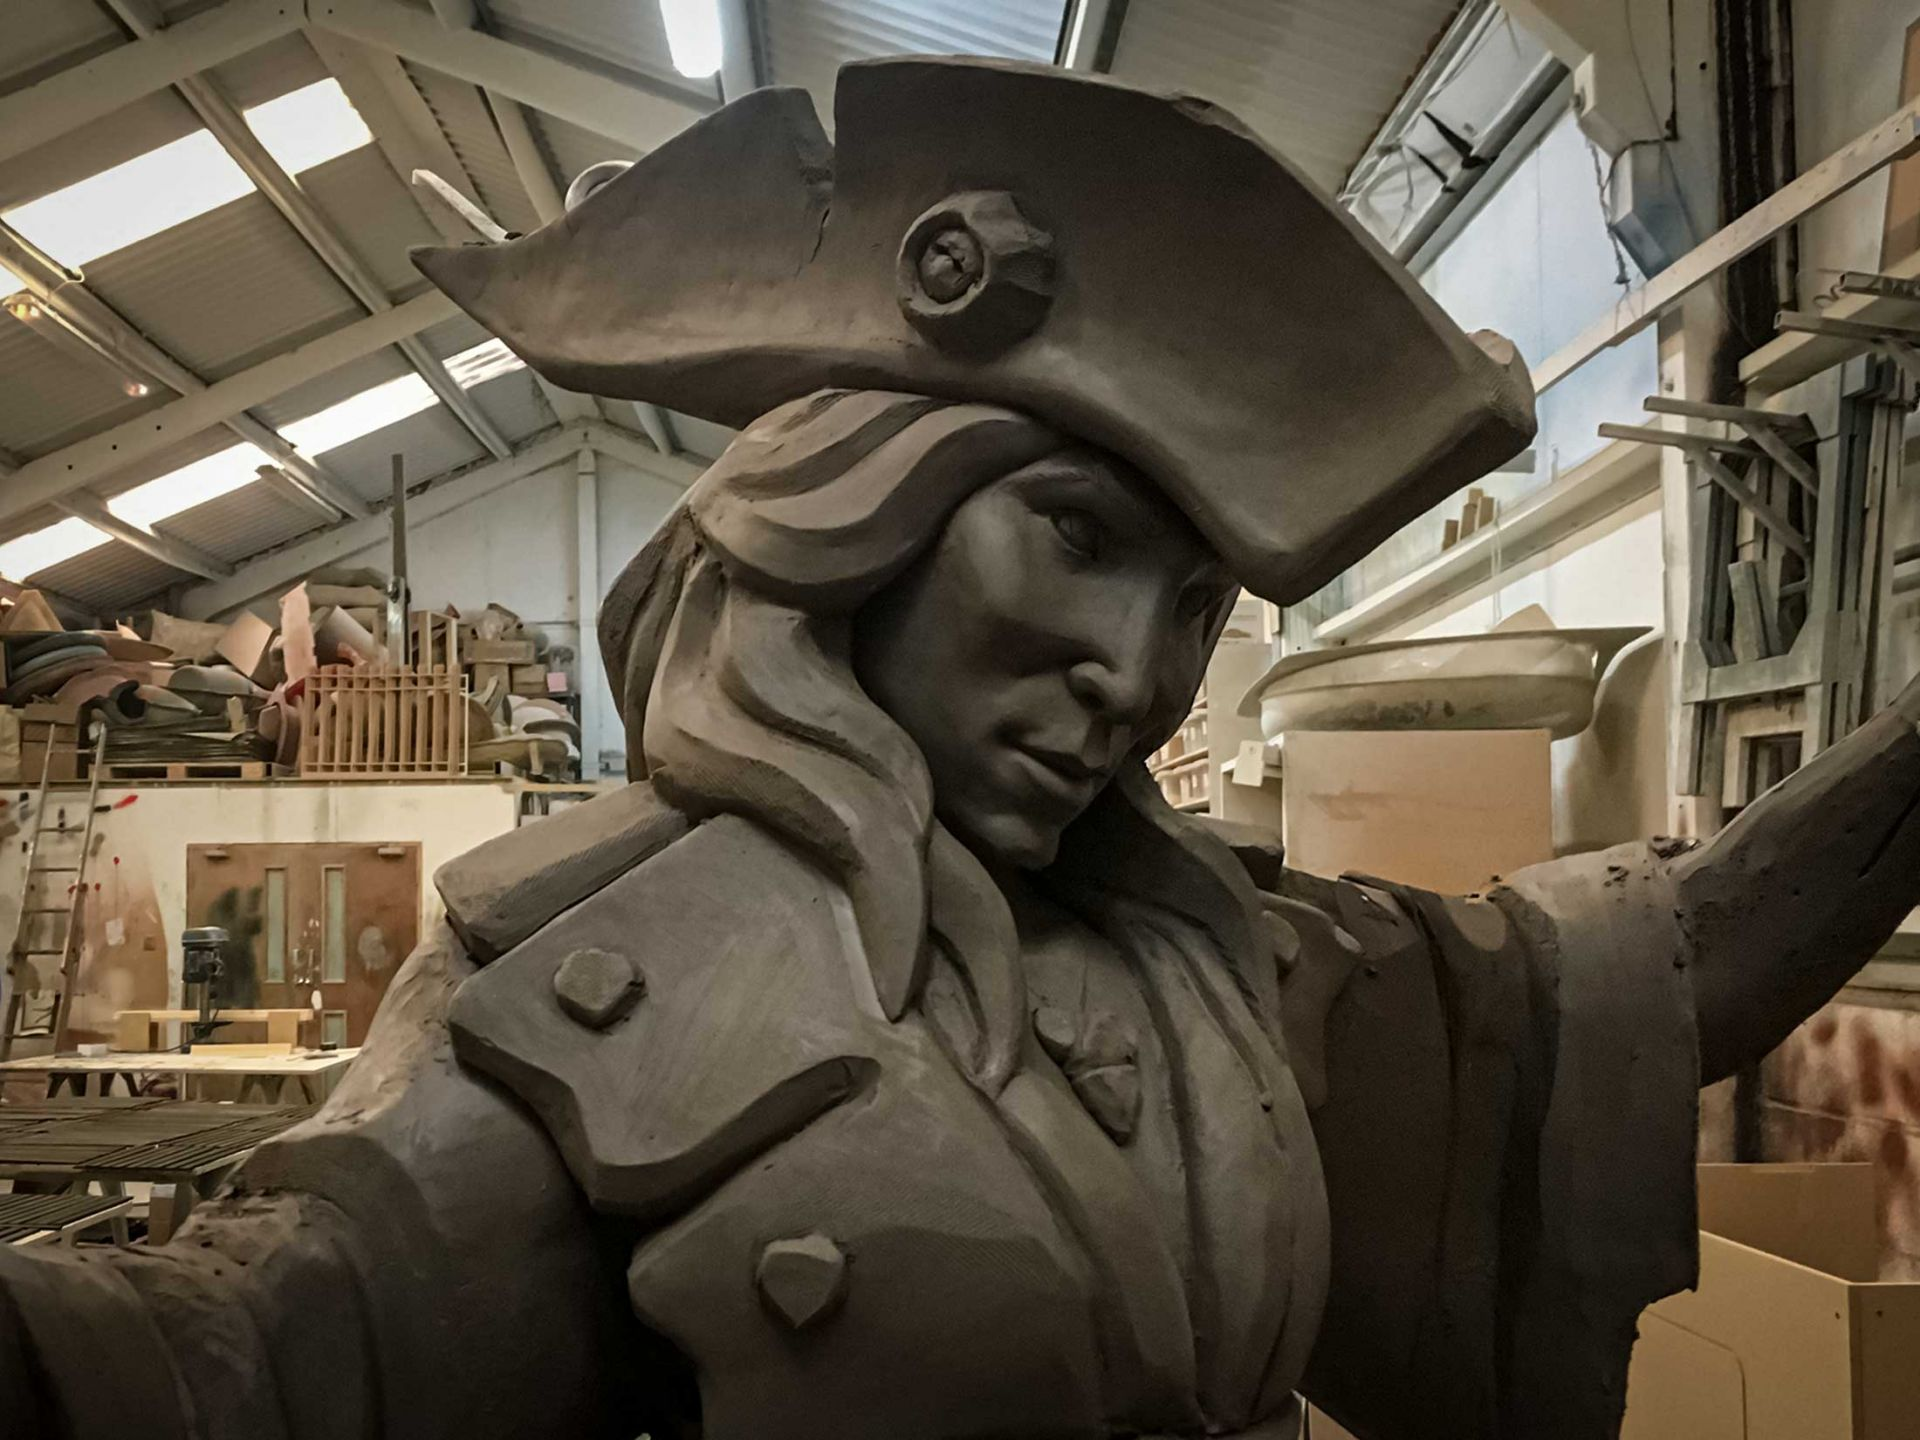 Sculpted belle sea of thieves character.